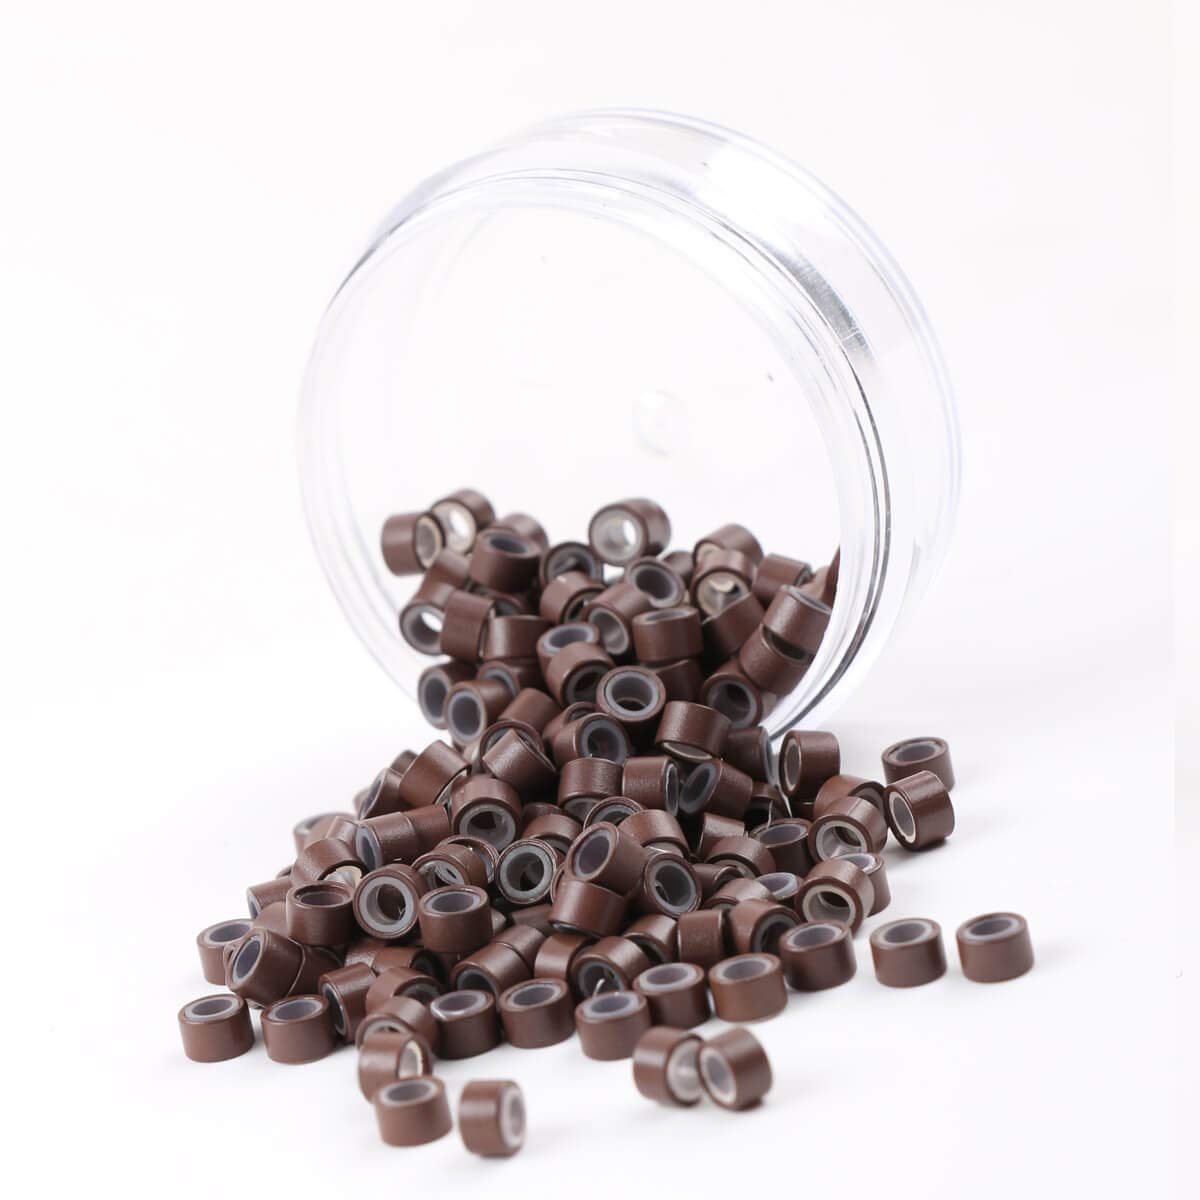 200Pcs Beads Silicone Aluminium Micro Nano Rings 3mm Lined For I Tip/Nano Hair Extensions Tool Beads (Brown Color)